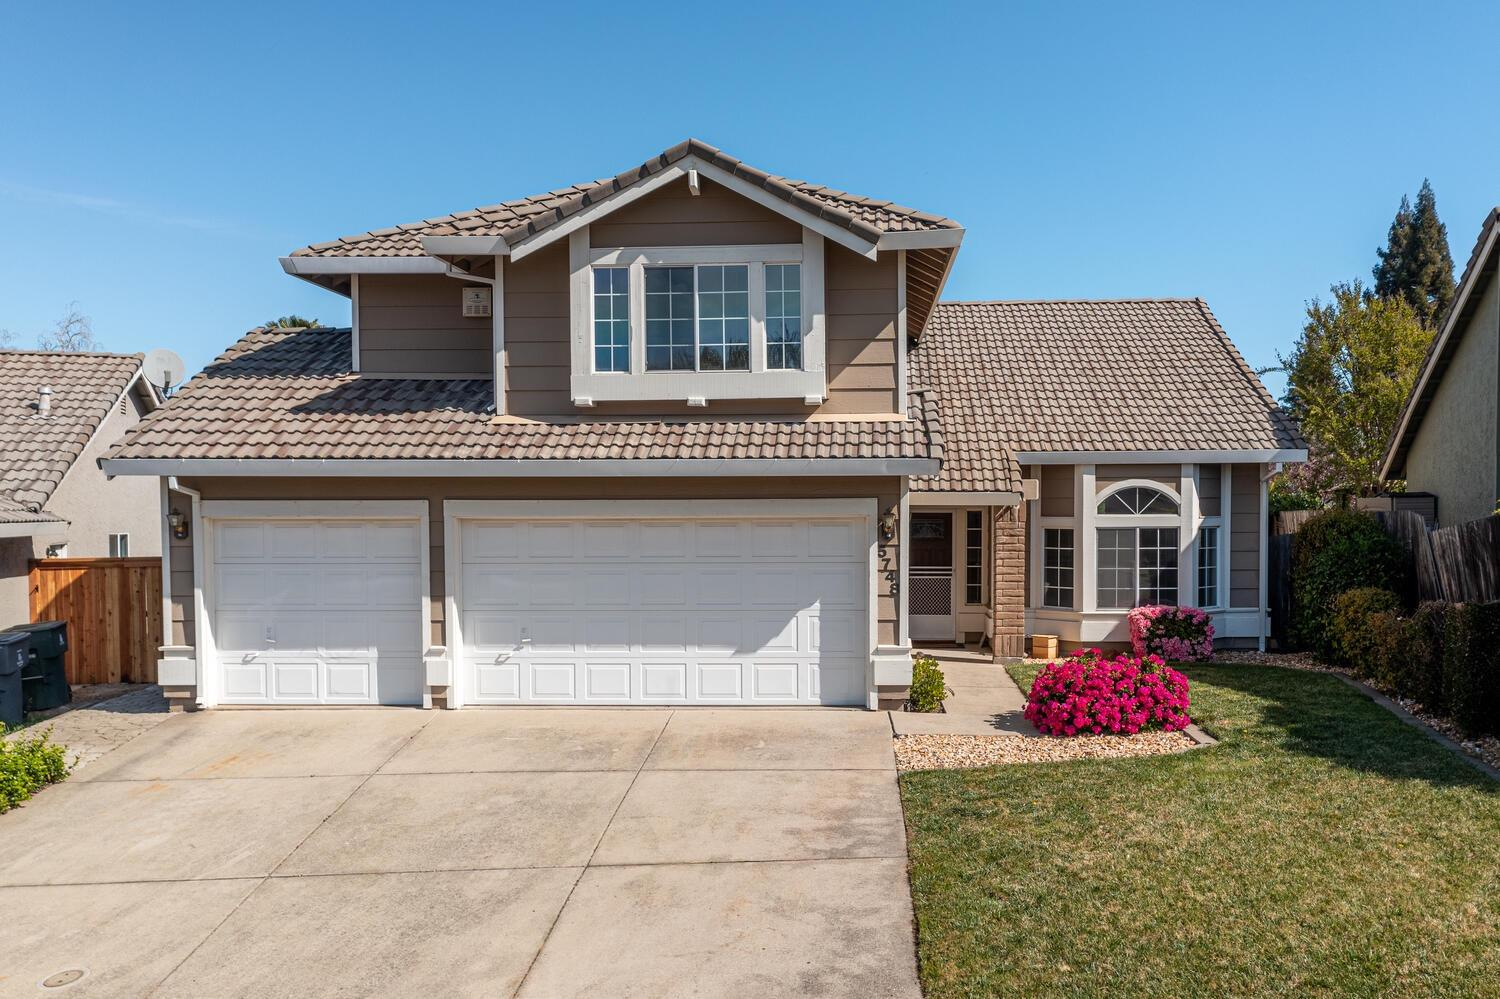 Incredibly well-maintained 2-story home with split levels, located on a circle, conveniently close to shopping, parks and highly desired Rocklin schools. Walking distance to Cobblestone Elementary. 4 total Bedrooms and 3 Full Baths. One Bedroom and Full Bath are downstairs. Kitchen features wood laminate flooring, stainless steel gas stove and a kitchen eating area. Formal Dining Room. Formal Living Room. Separate Family Room with Brick Fireplace. Whole House Fan. Ceilings fans in all bedrooms and living areas. Cathedral vaulted ceilings in both the Family and Living Rooms. Master Walk-in Closet. 3-car Garage.  SUPER CLEAN and MOVE-IN READY - A MUST SEE!